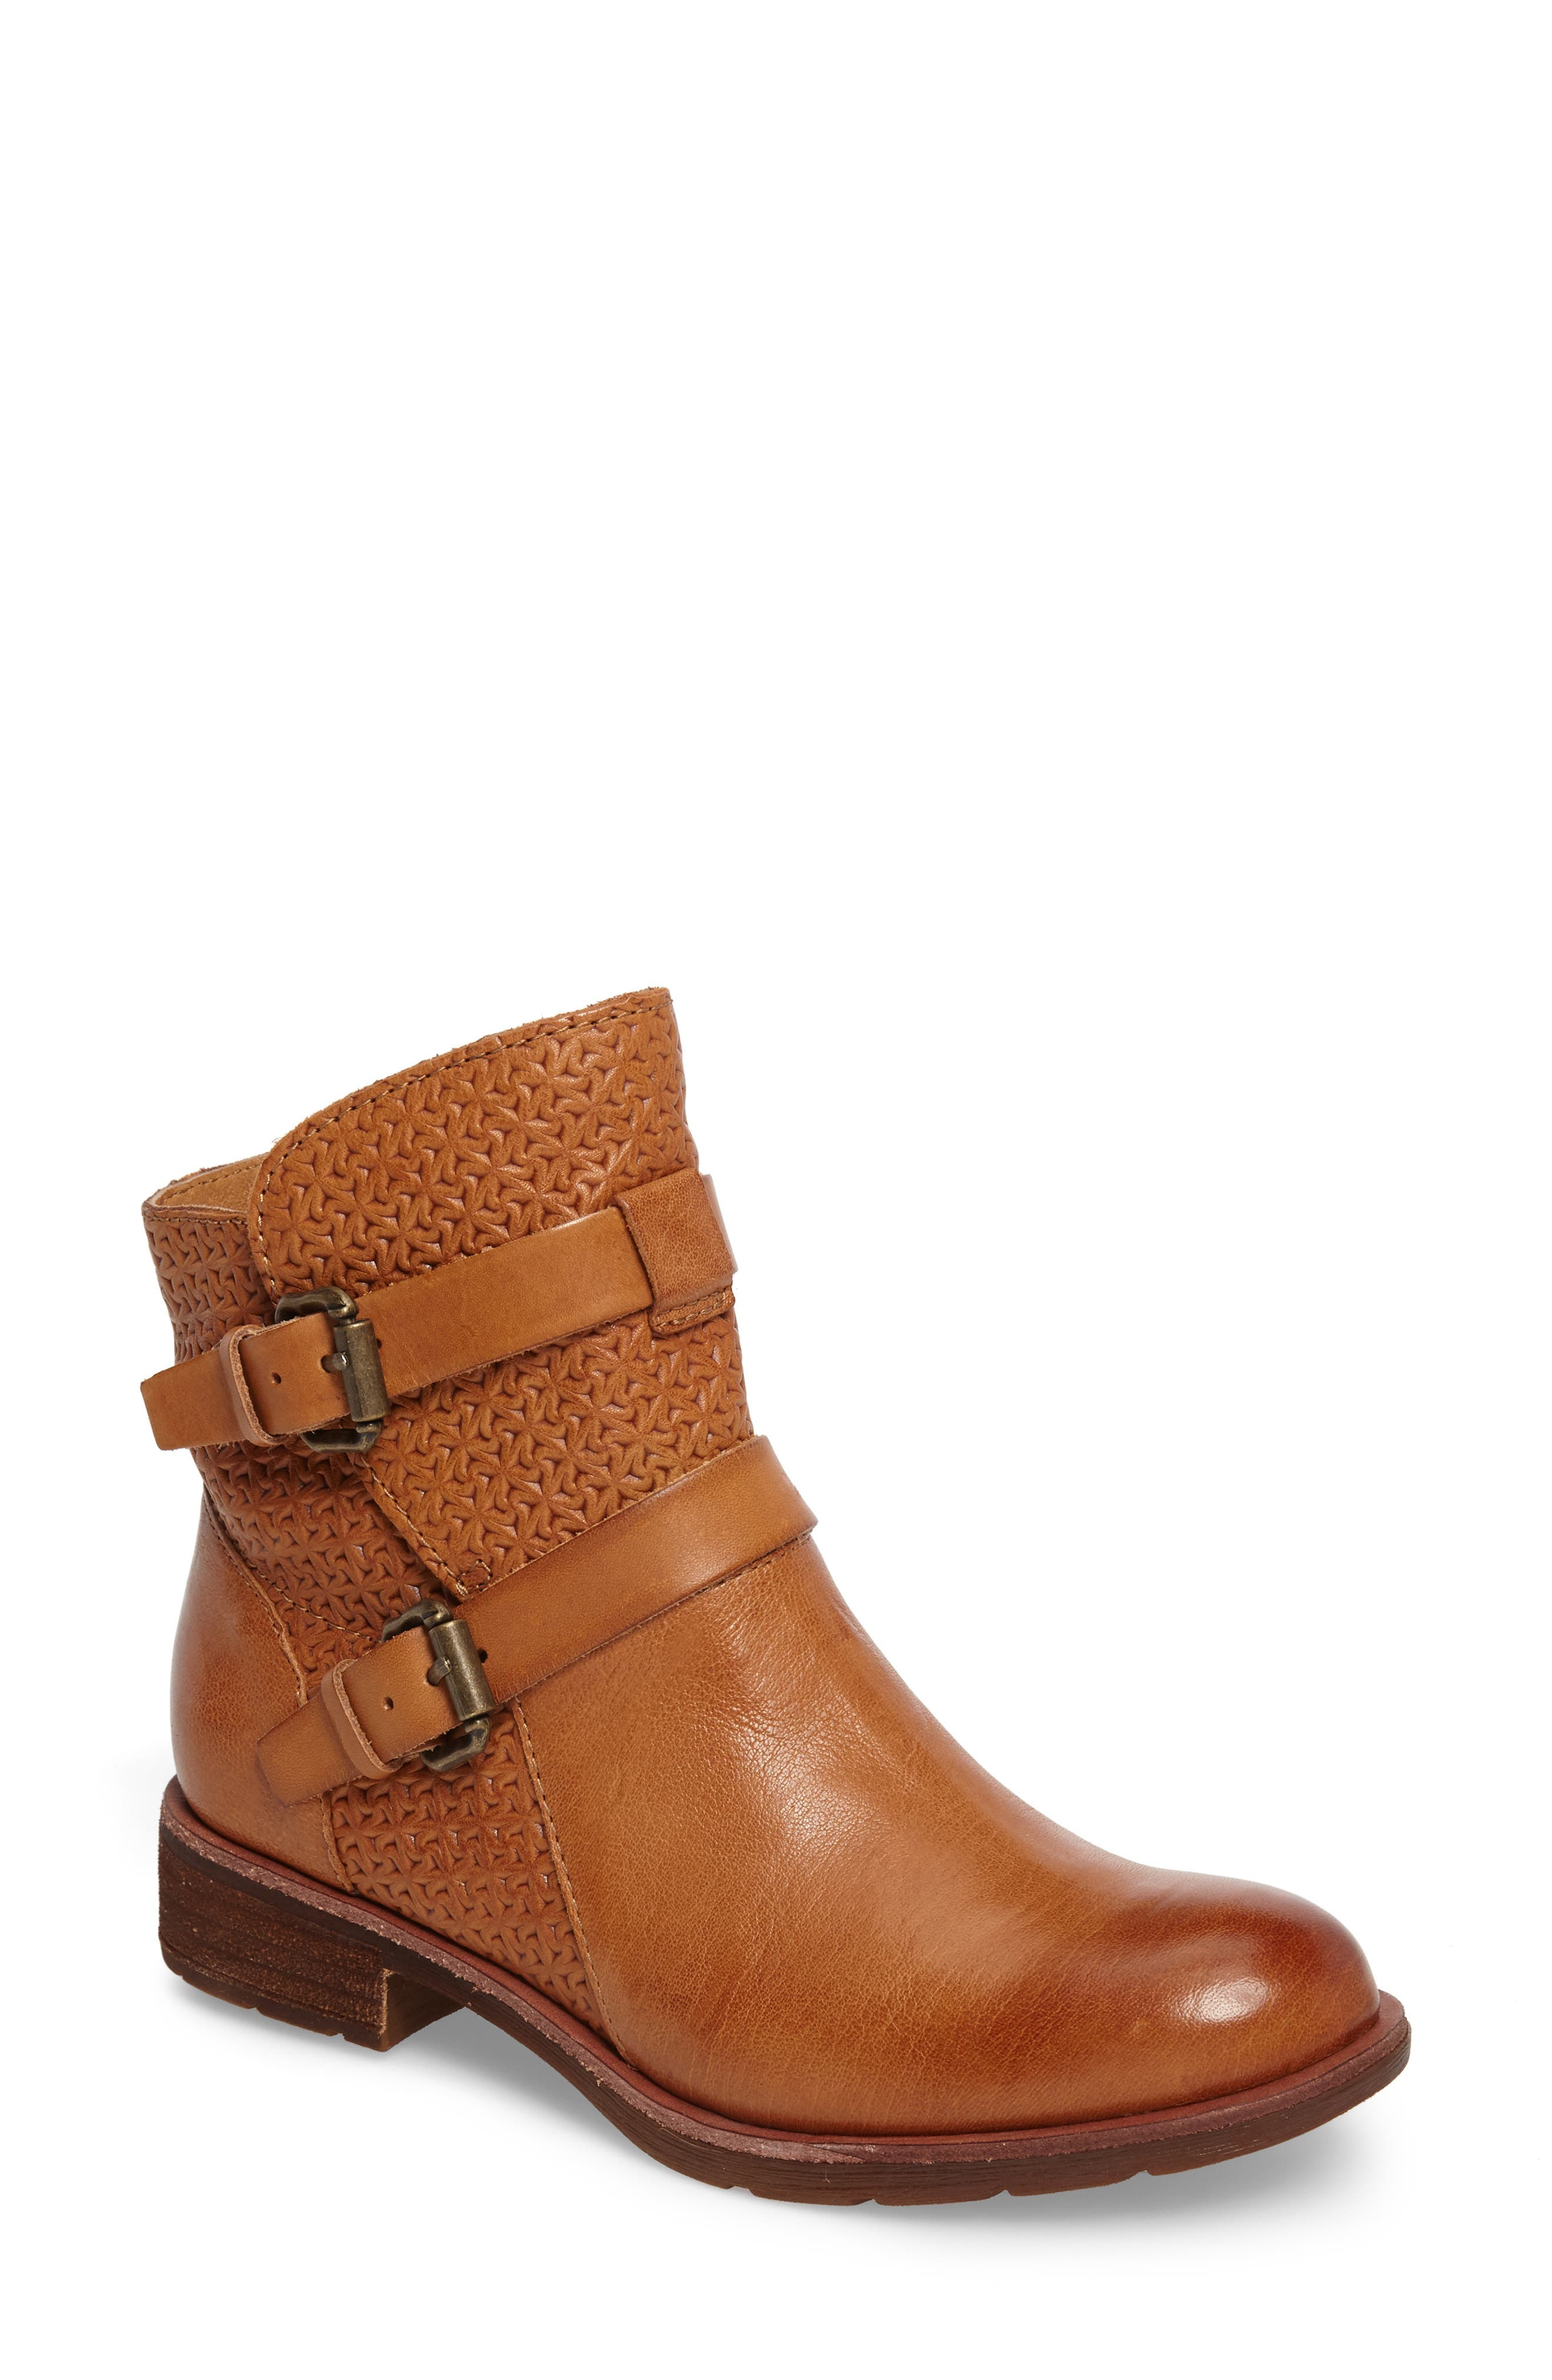 Baywood Buckle Boot,                         Main,                         color, LUGGAGE LEATHER